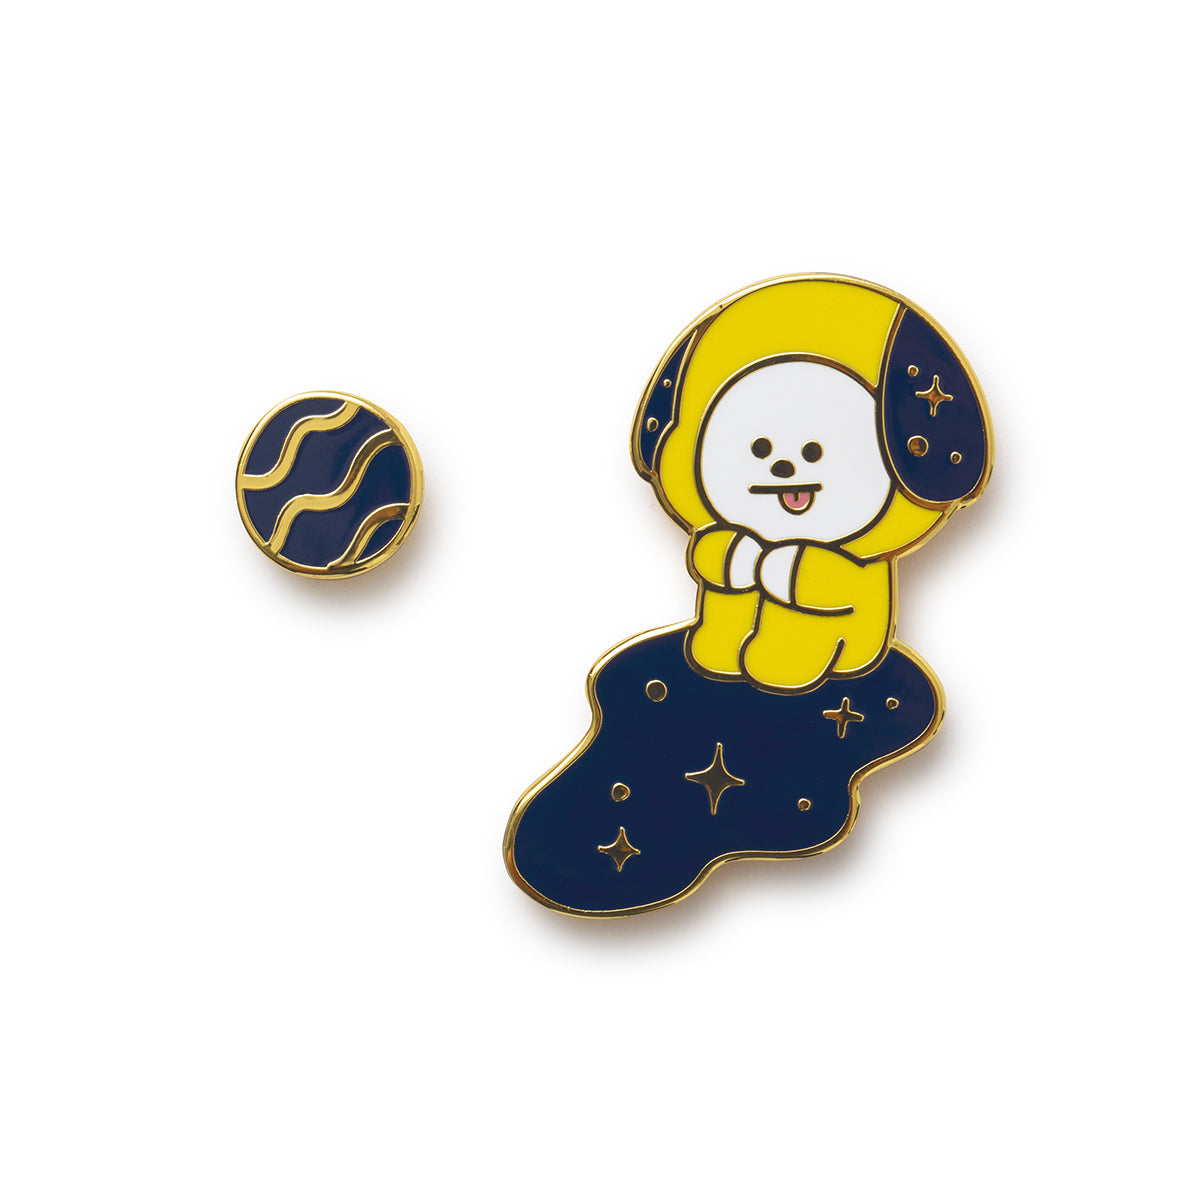 BT21 CHIMMY Universtar Metal Badge 1